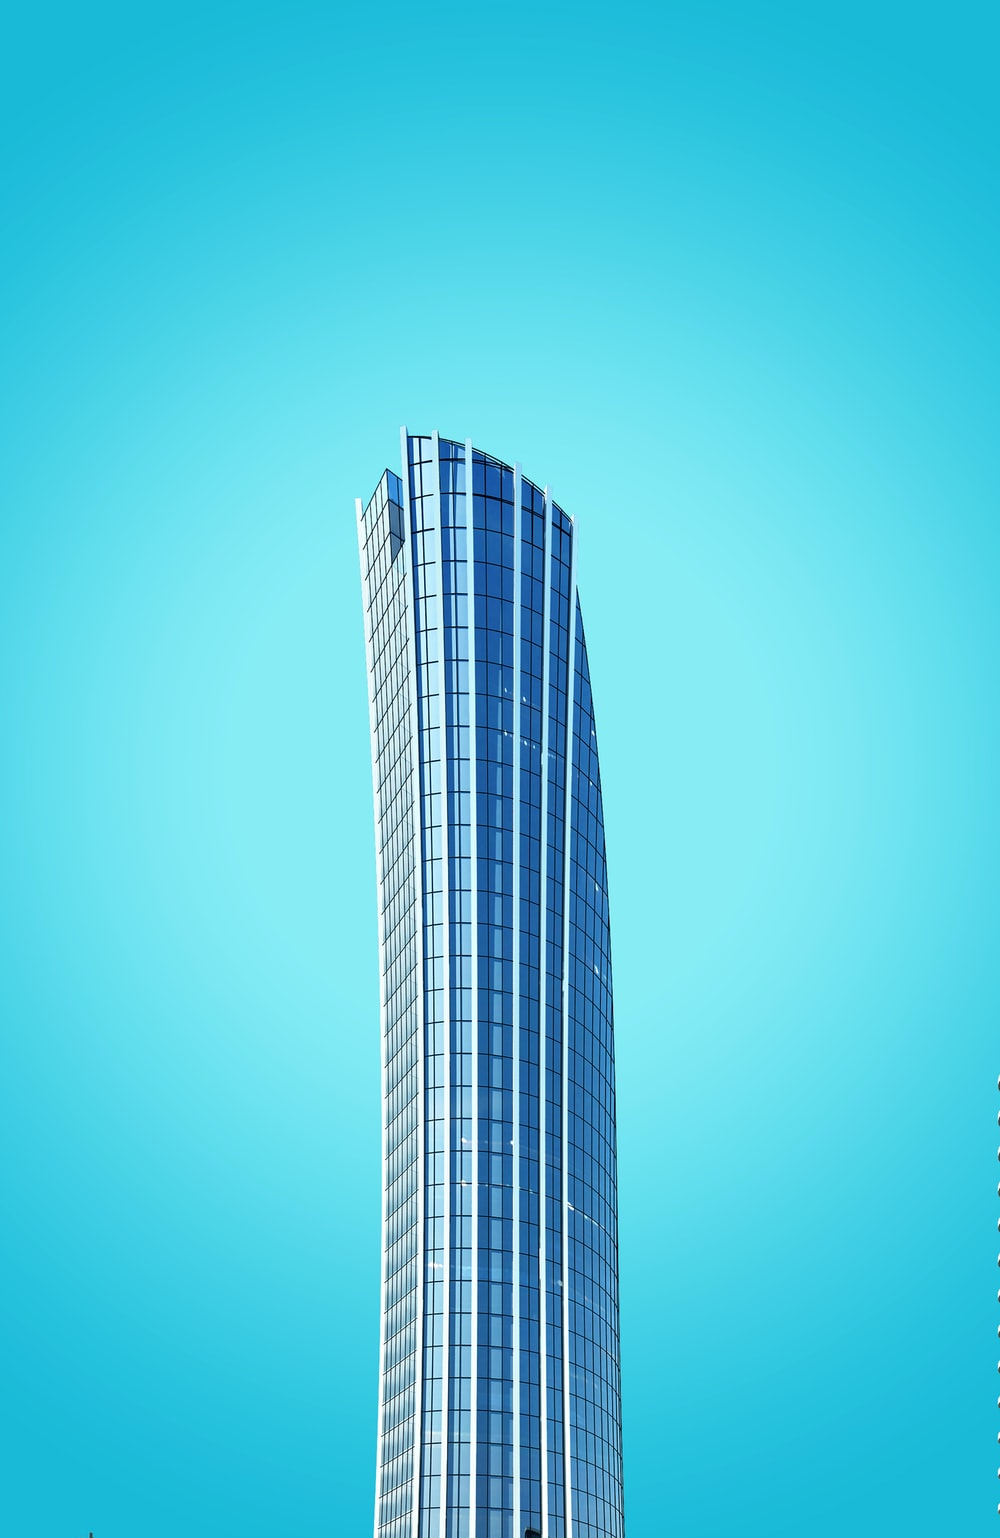 curtain-wall high-rise building under blue sky